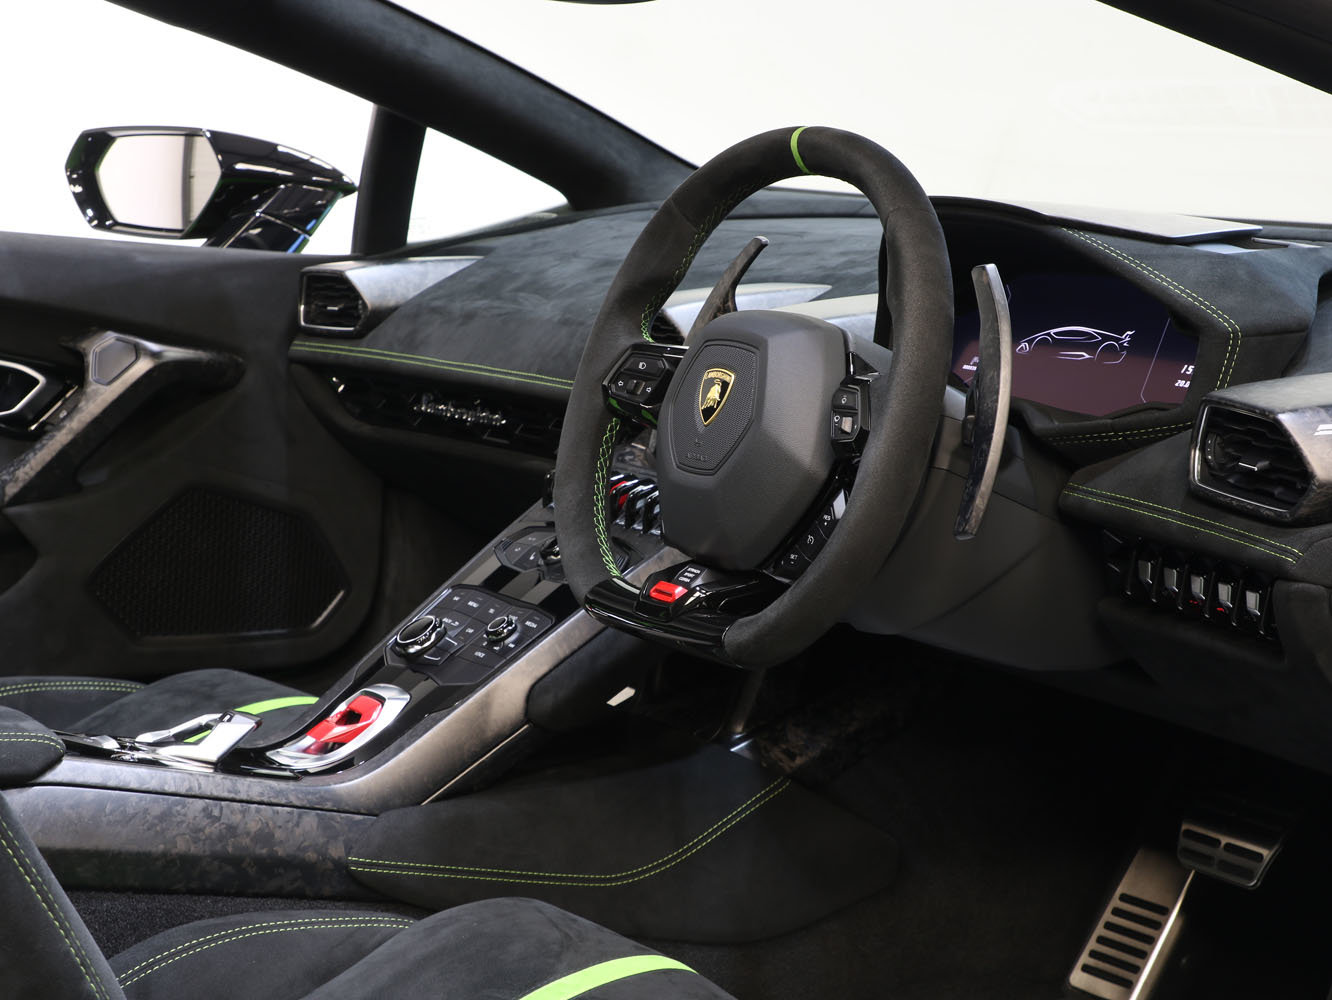 2019 19 19 LAMBORGHINI HURACAN SPYDER PERFORMANTE AUTO For Sale (picture 5 of 6)